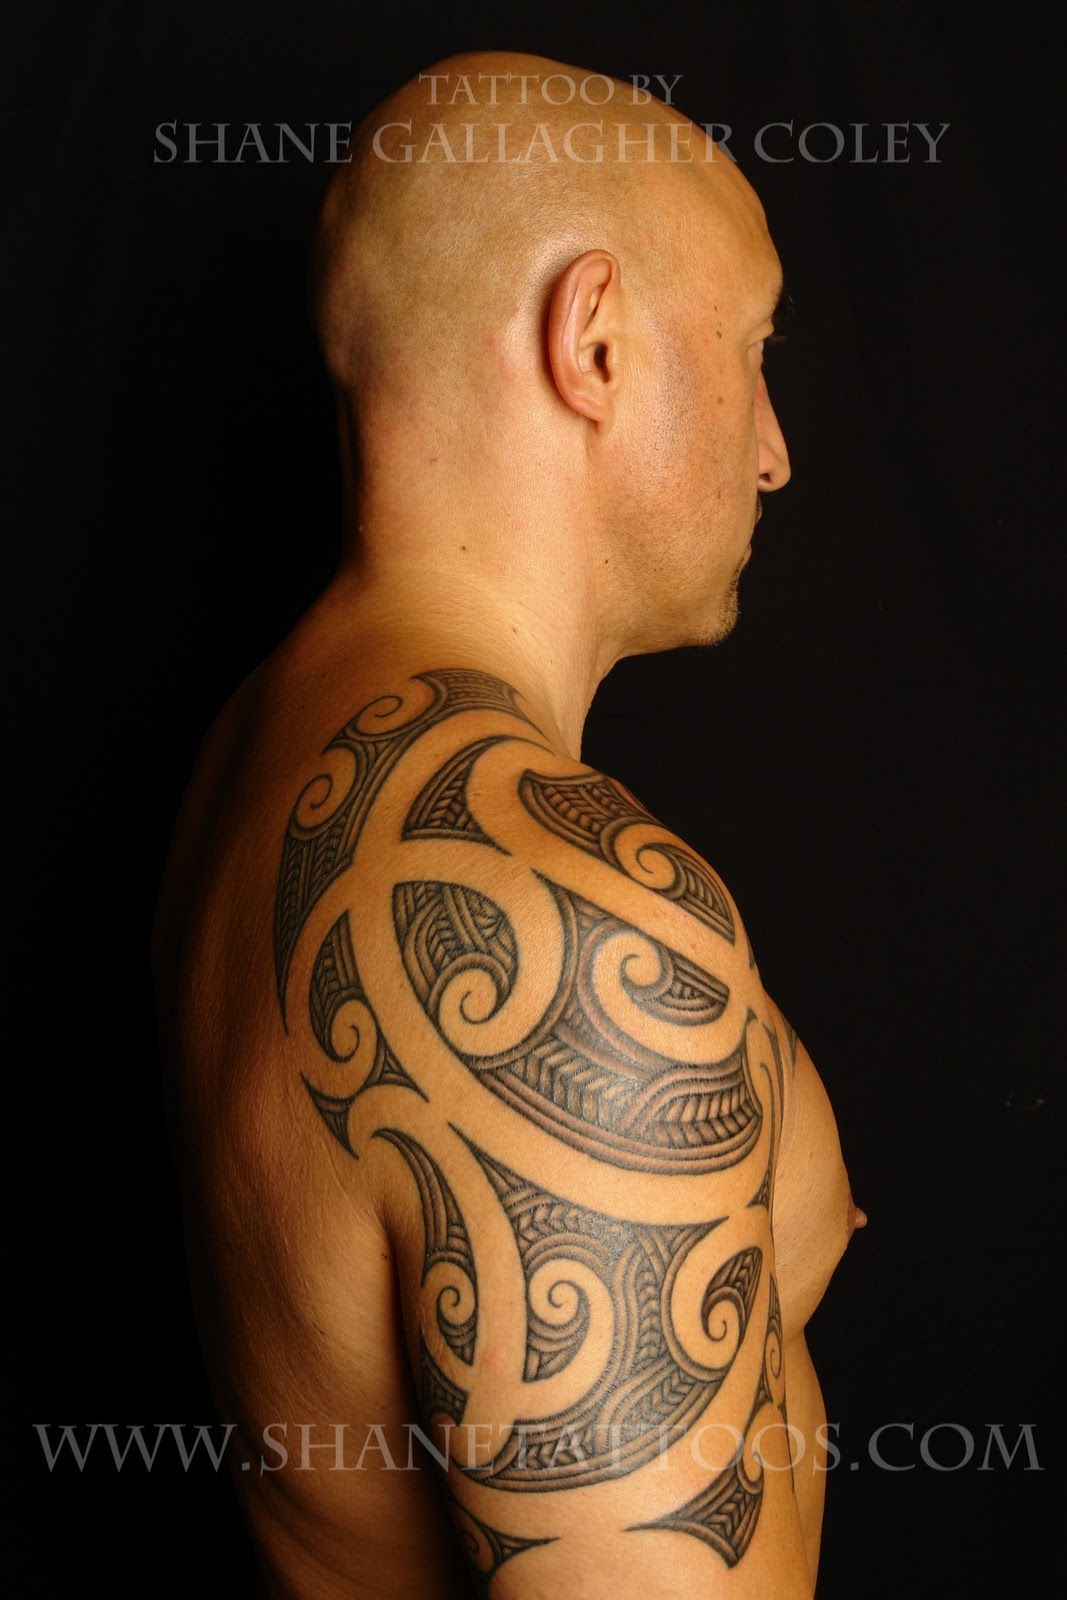 shane tattoos maori shoulder half sleeve tattoo on doug. Black Bedroom Furniture Sets. Home Design Ideas